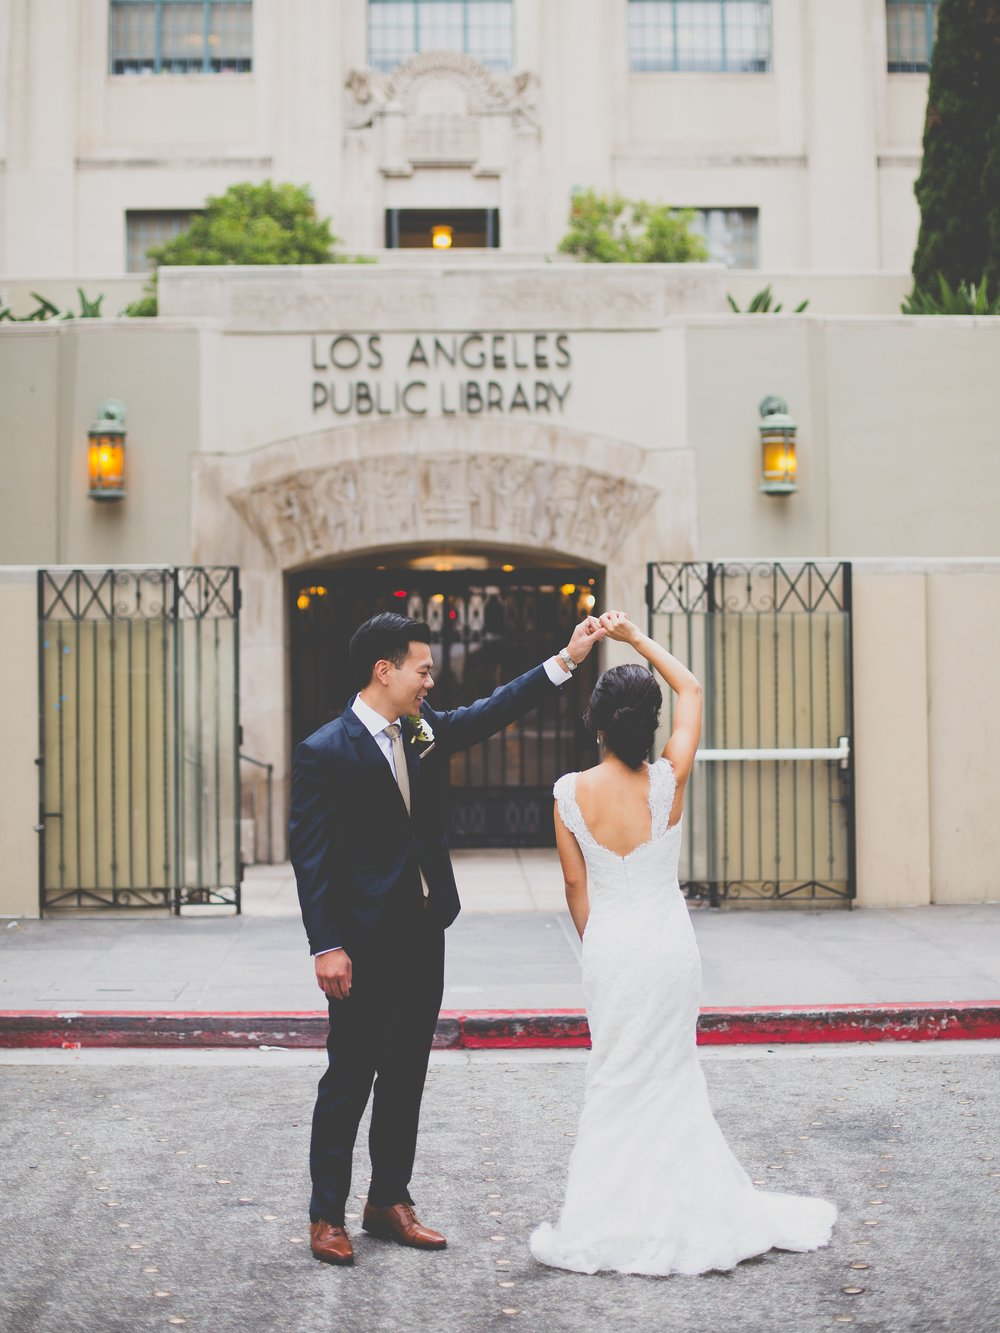 100 LAYER CAKE : Whimsical Downtown Los Angeles Wedding